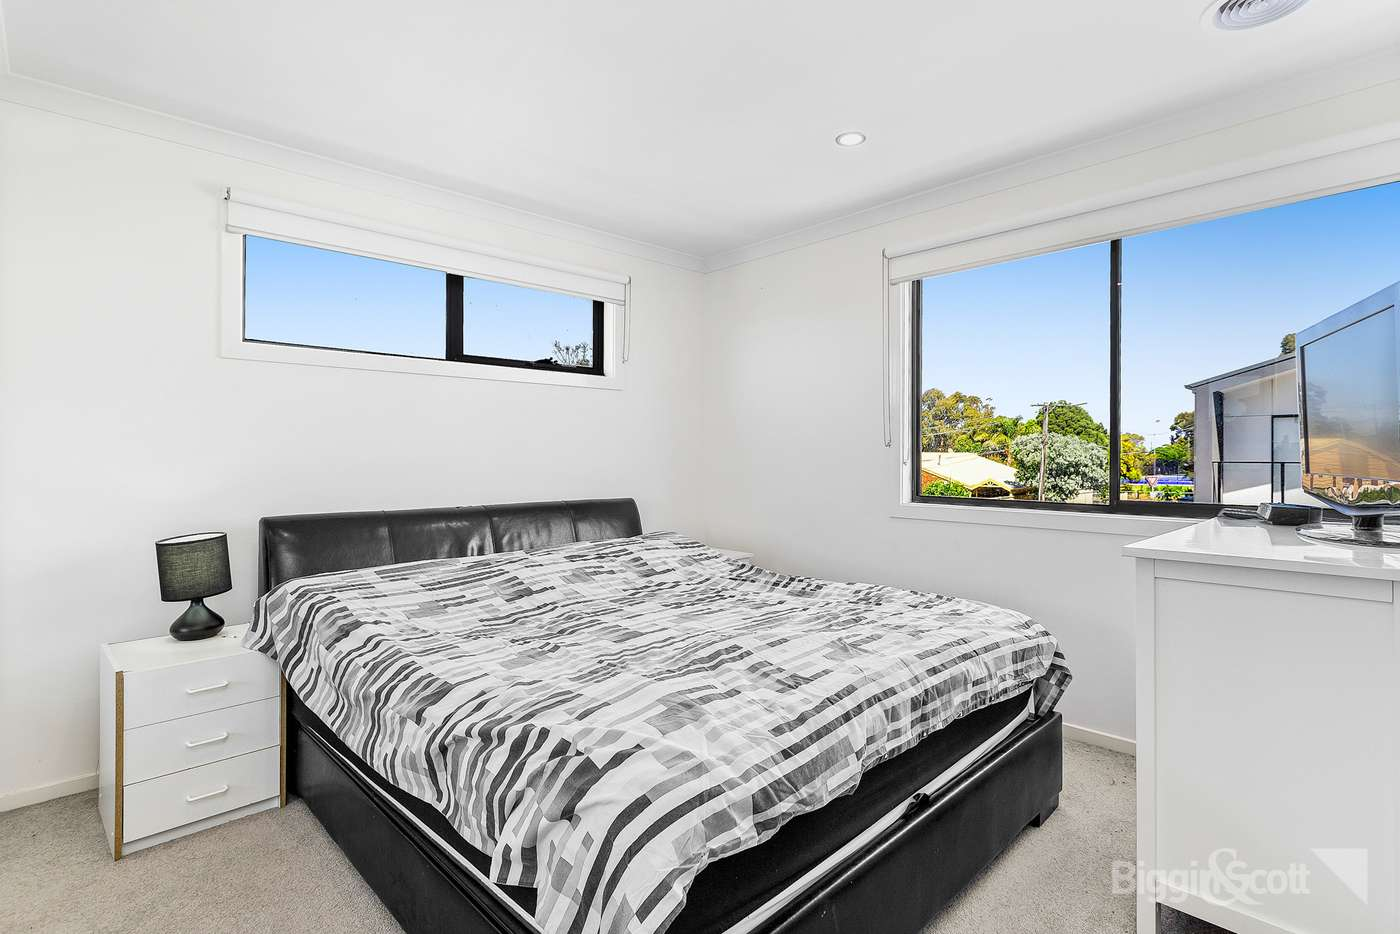 Fifth view of Homely townhouse listing, 21 Highbury Street, West Footscray VIC 3012